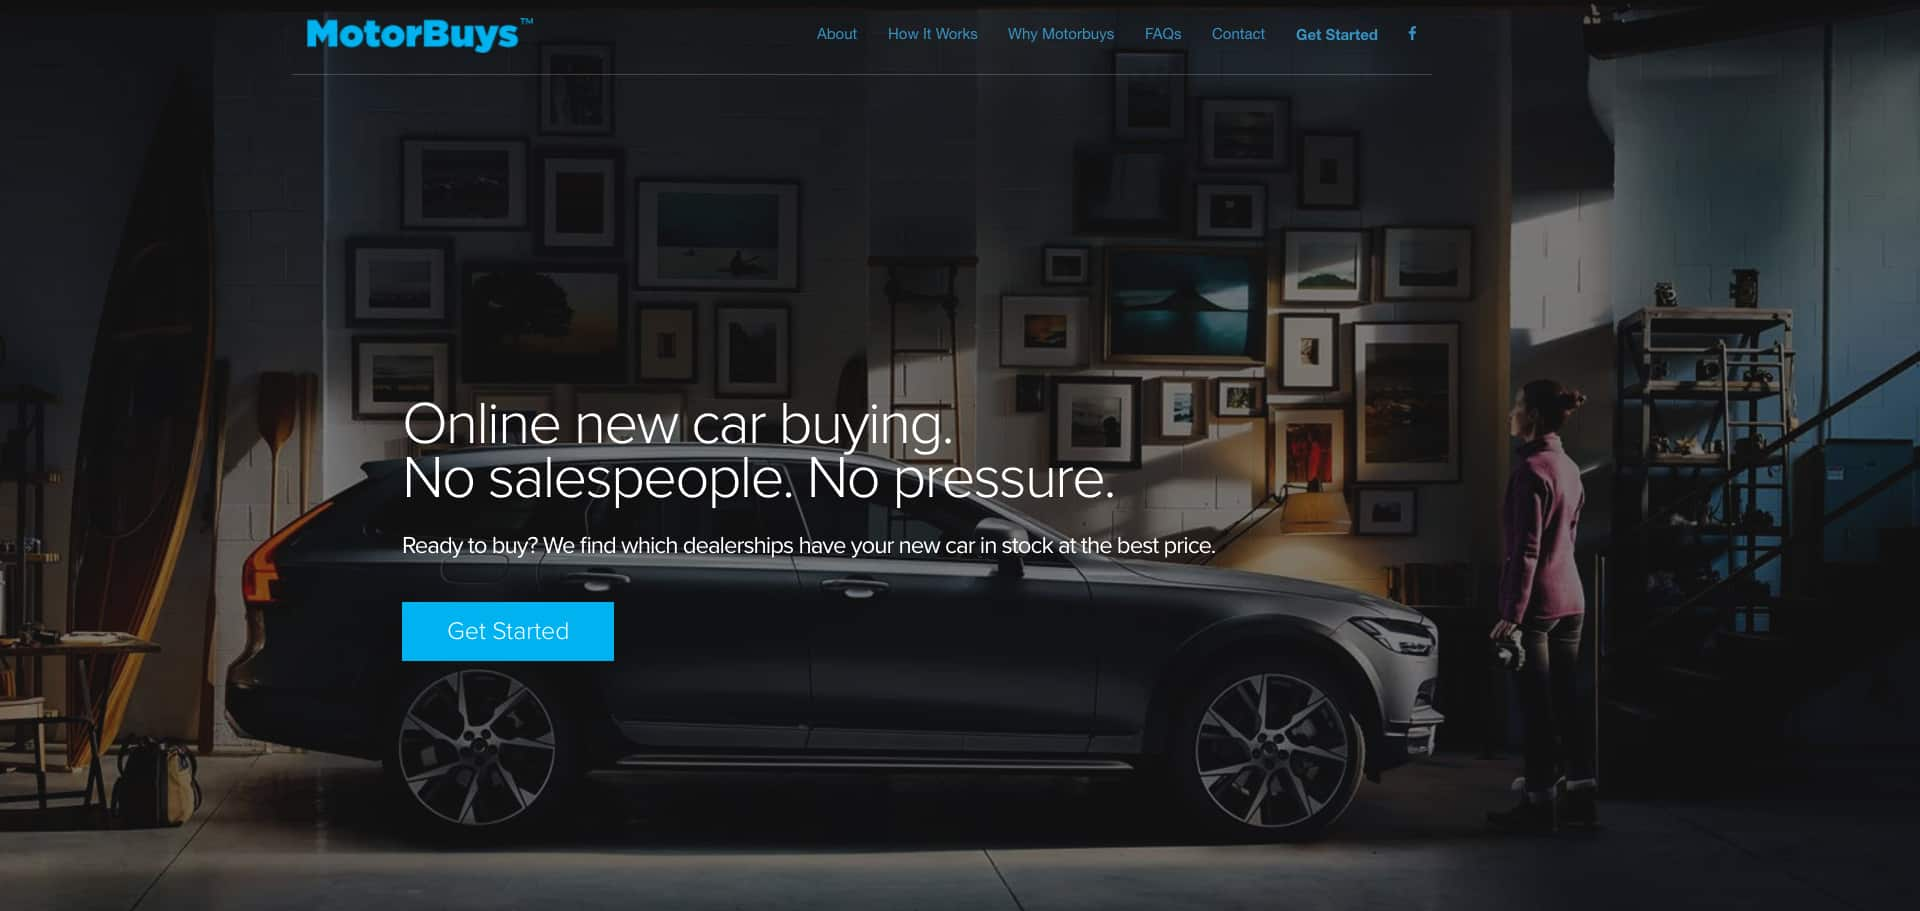 The best new car price means lower lease payment.